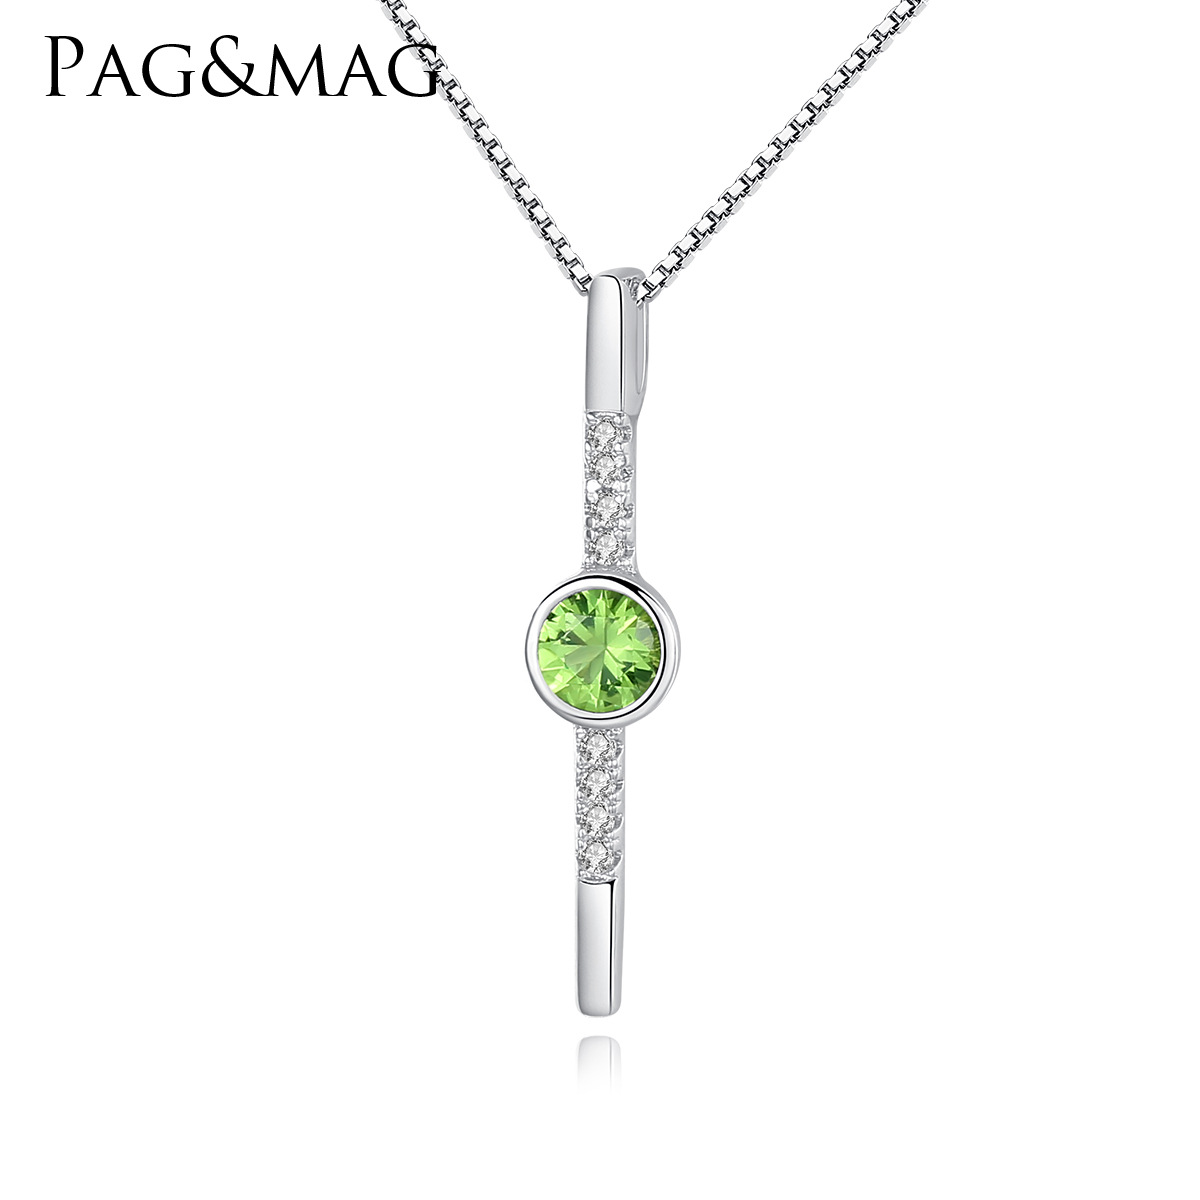 PAG-MAG S925 Sterling Silver Necklace Japanese-South Korean Simple Green Crystal Set 3A Zircon Women's Money Trim(China)